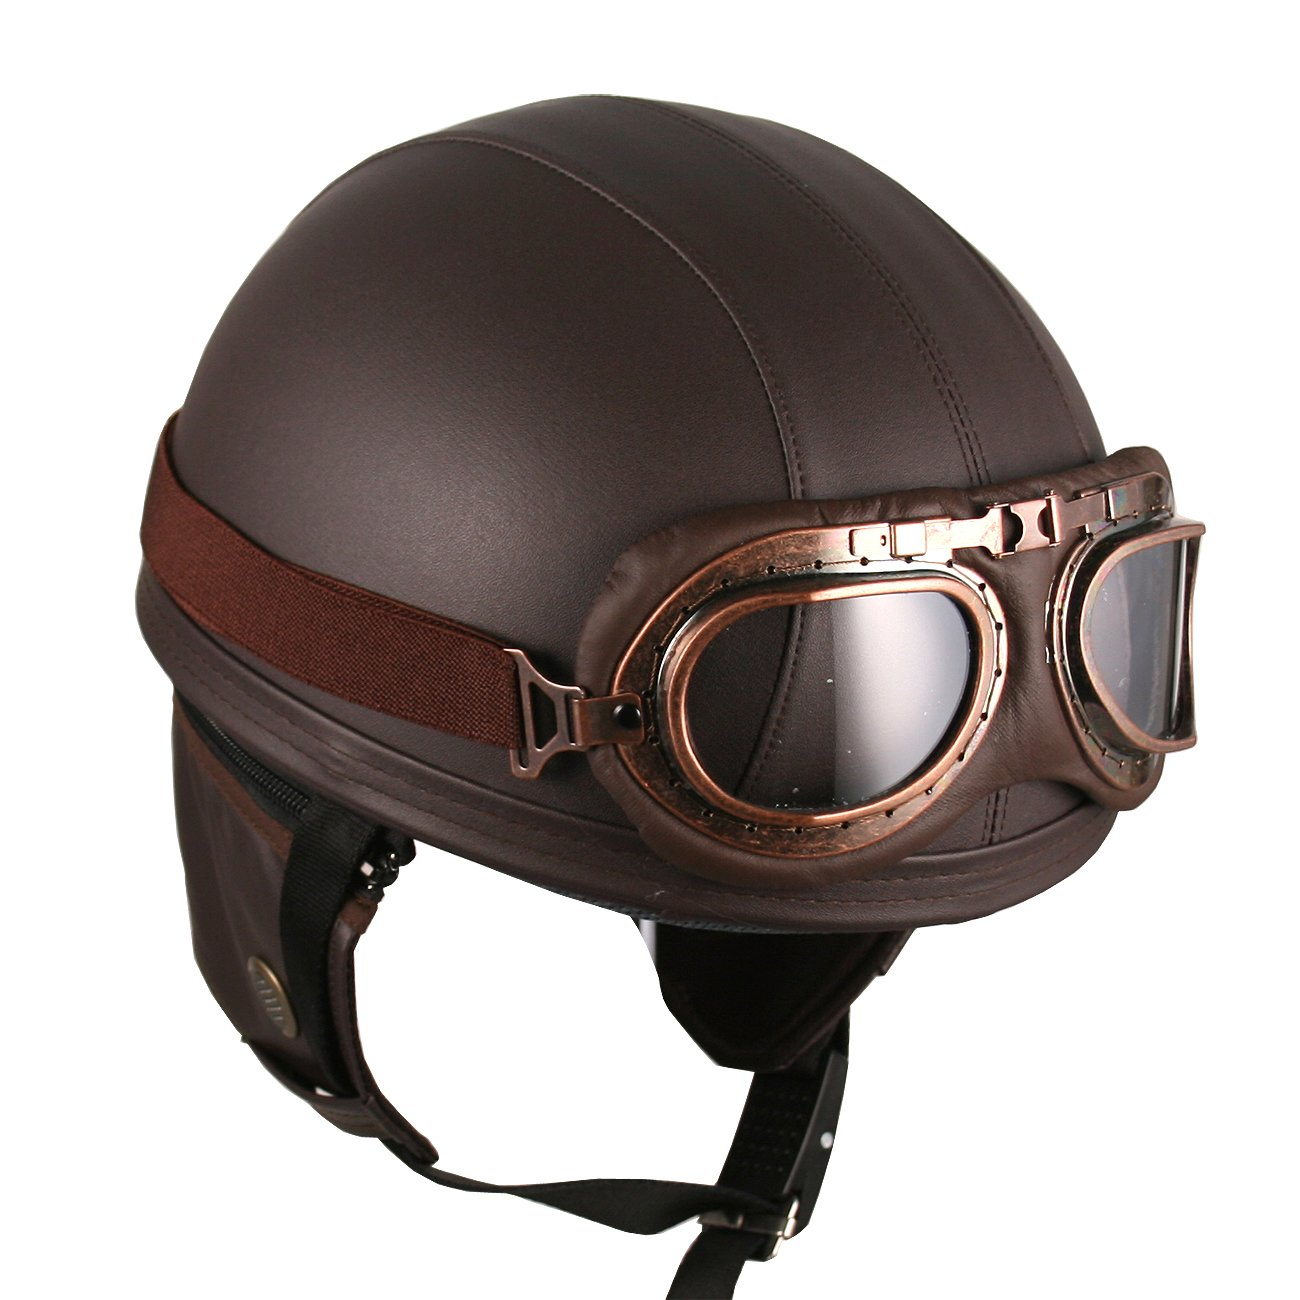 Leather Goggles German Vintage Style Half 1/2 Helmet Motorcycle Biker Cruiser Scooter Touring Helmet (Brown) 0